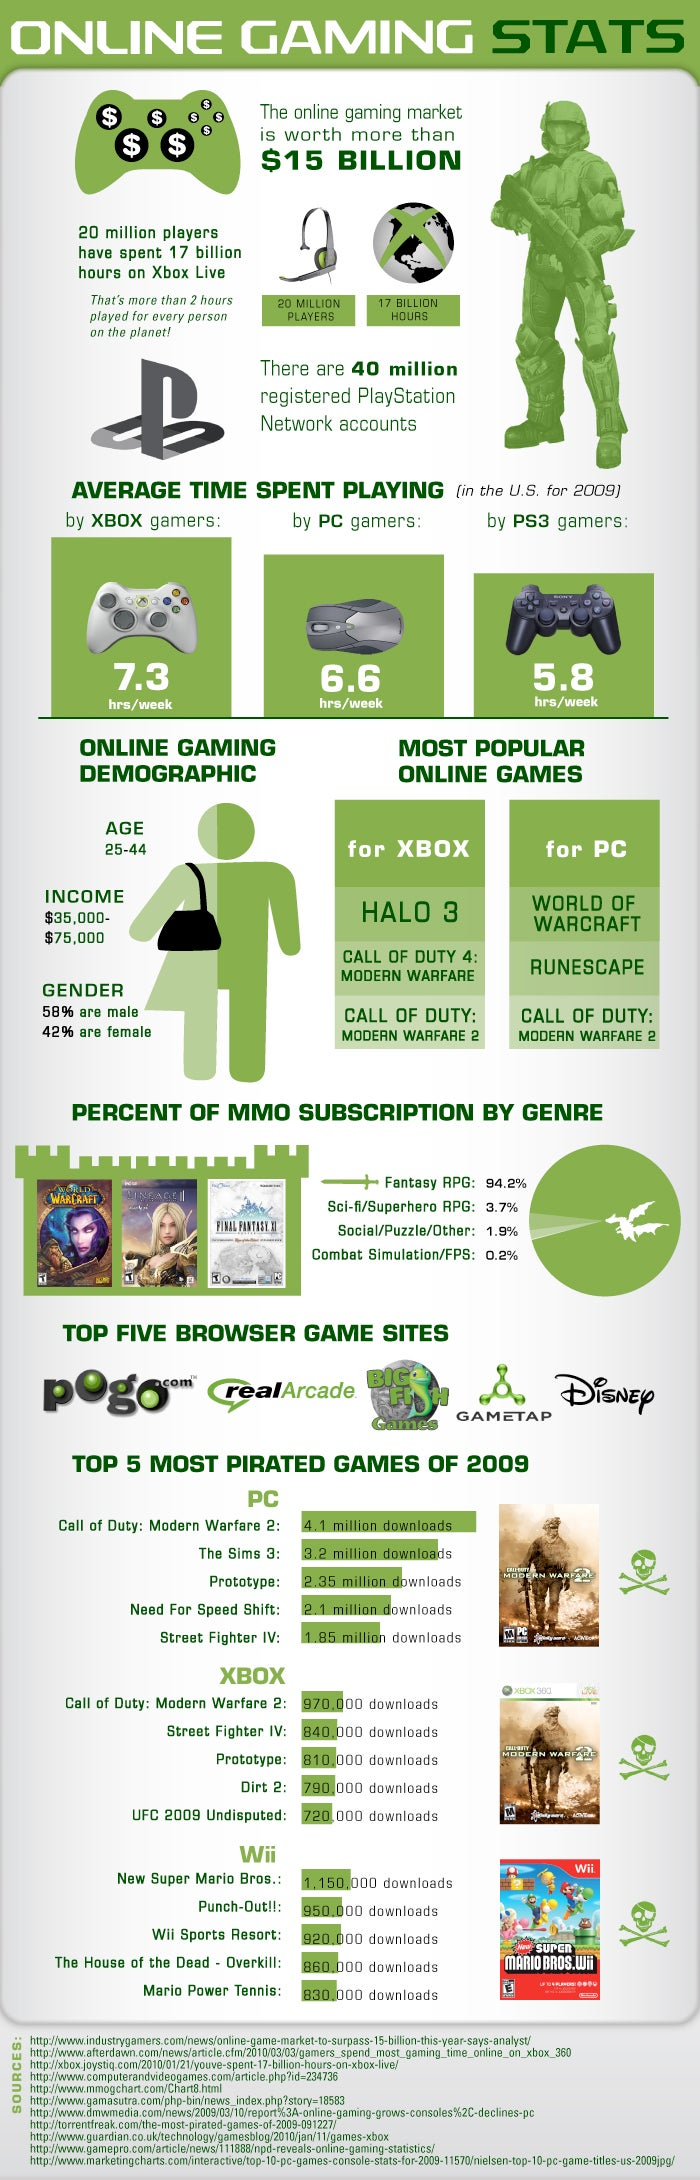 Online Gaming, In Pictures!